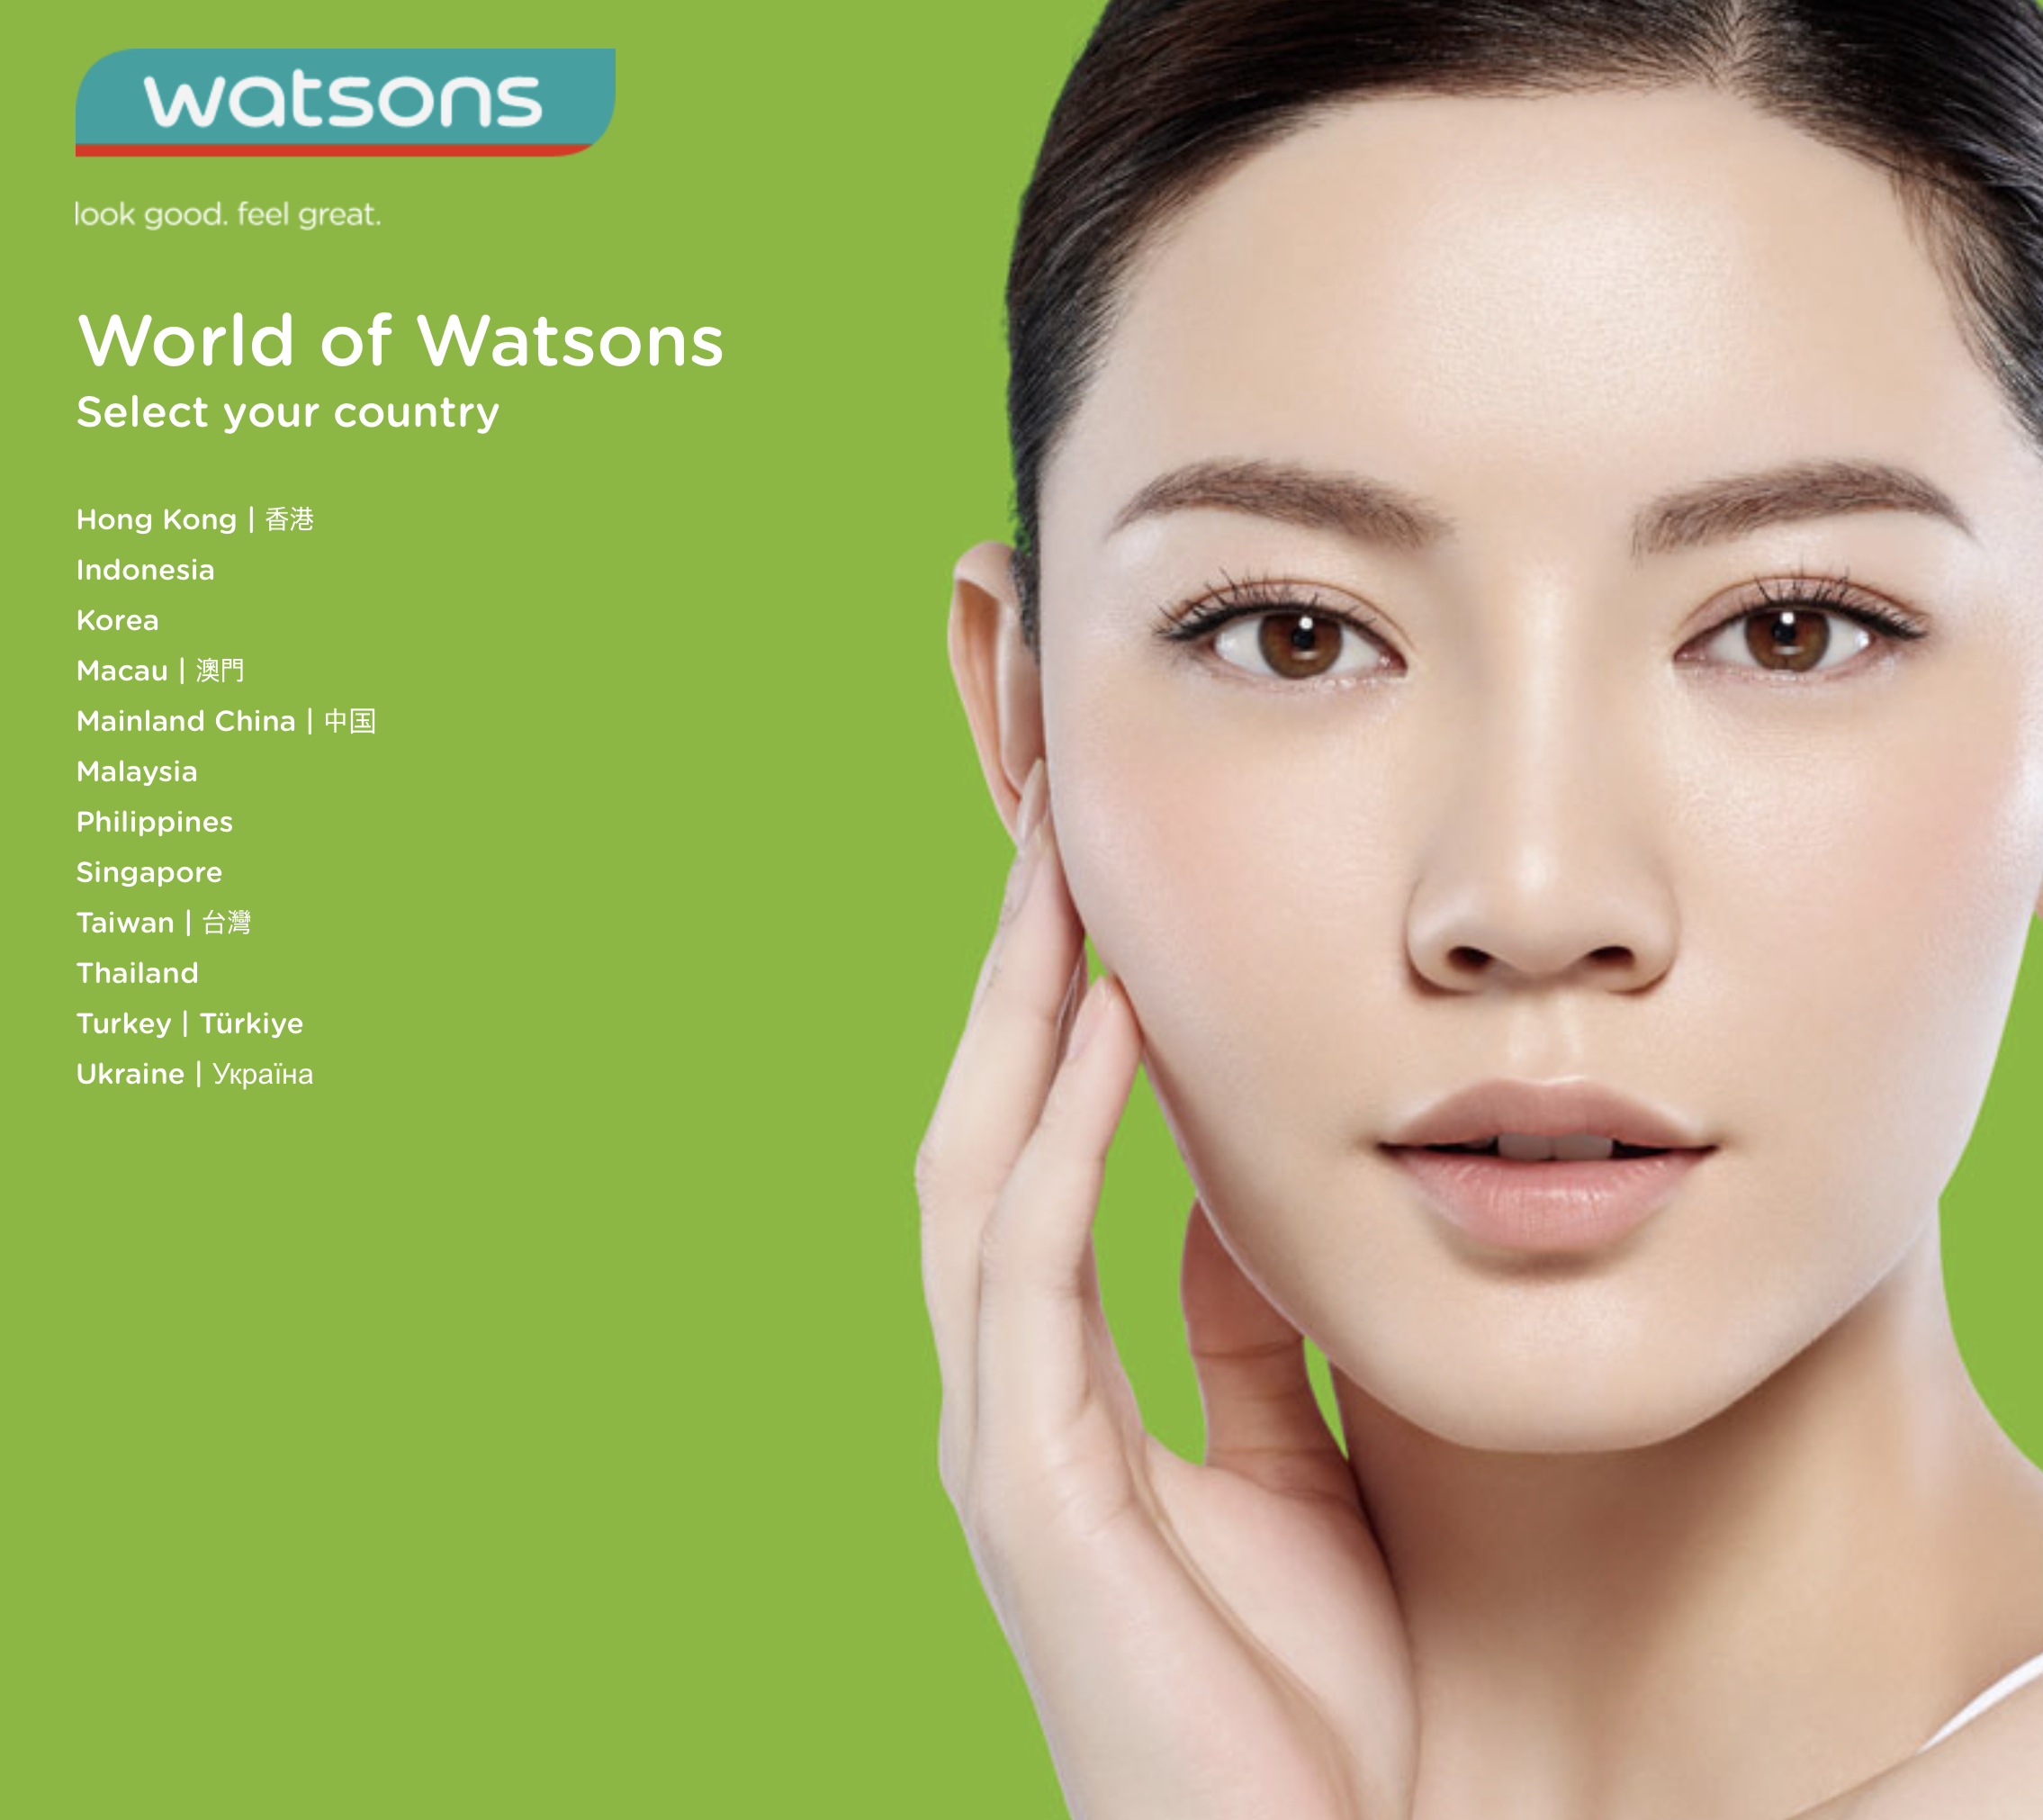 Watsons is under A.S. Watson Group - A member of CK Hutchison Holdings